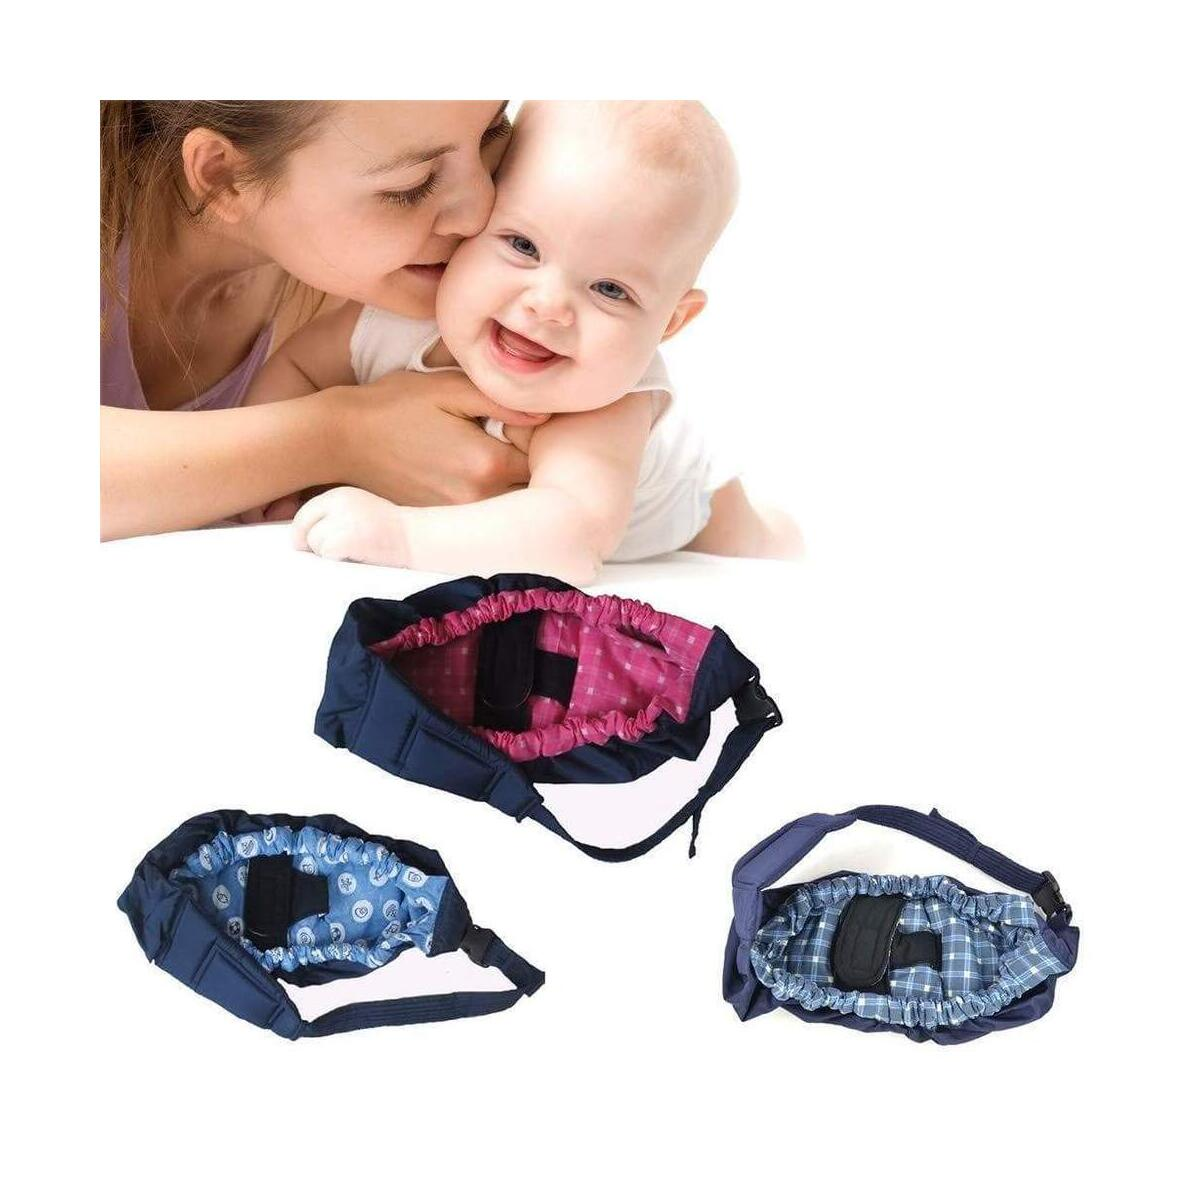 Baby Carrier All-in-1 Stretchy Baby Sling Wraps